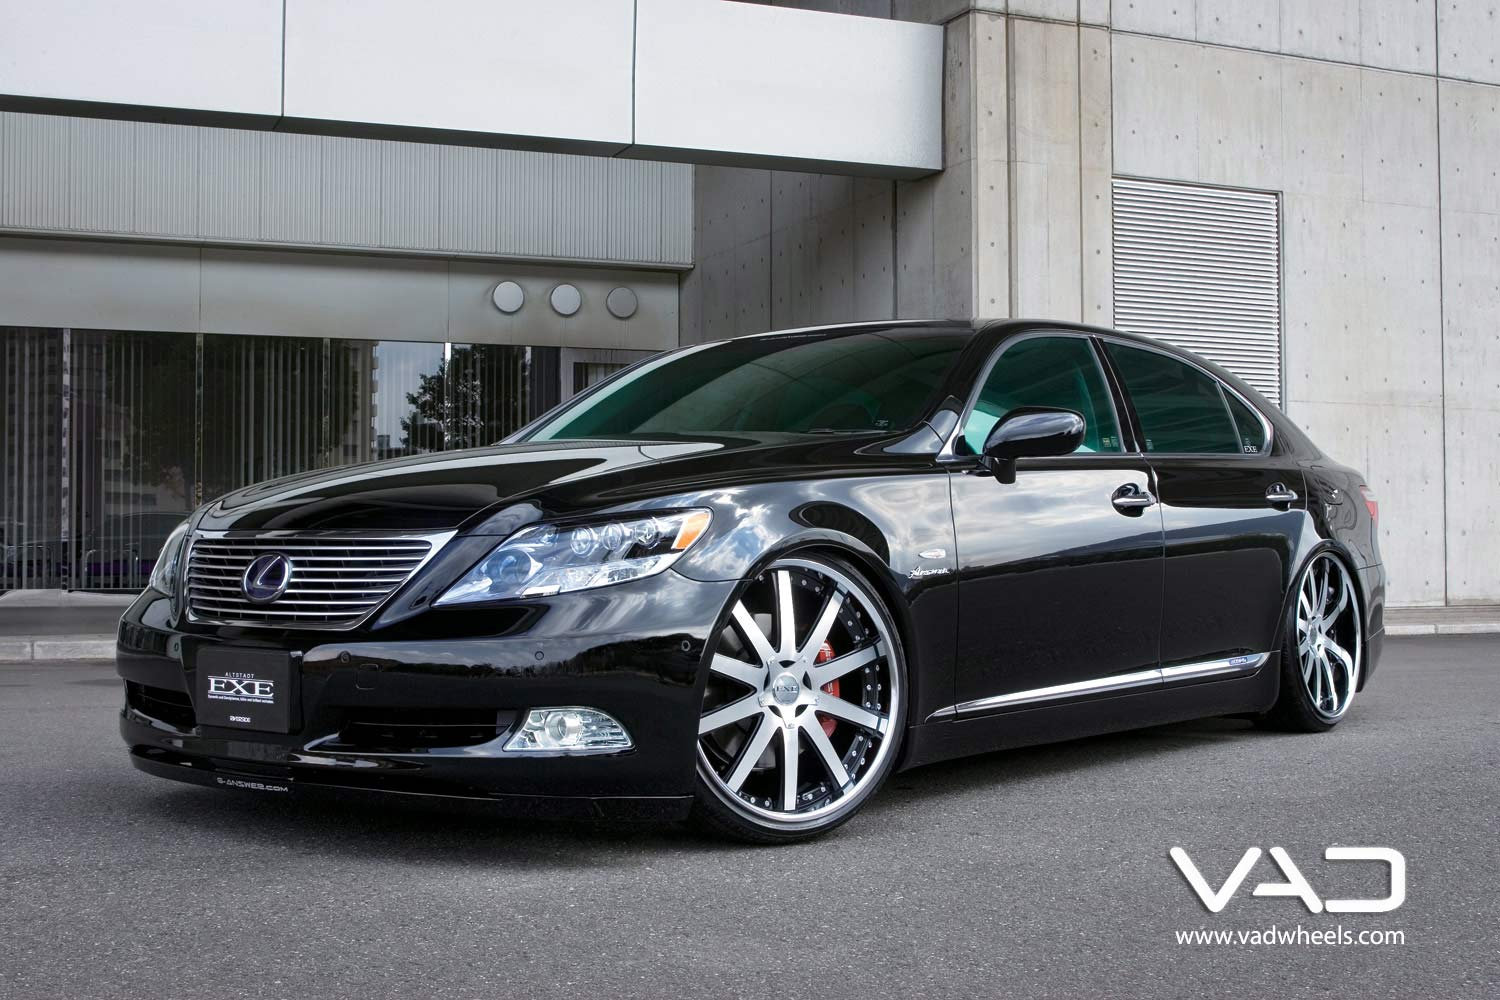 Lexus-LS460-Fitted-With-22''-Altstadt-F100-Polished